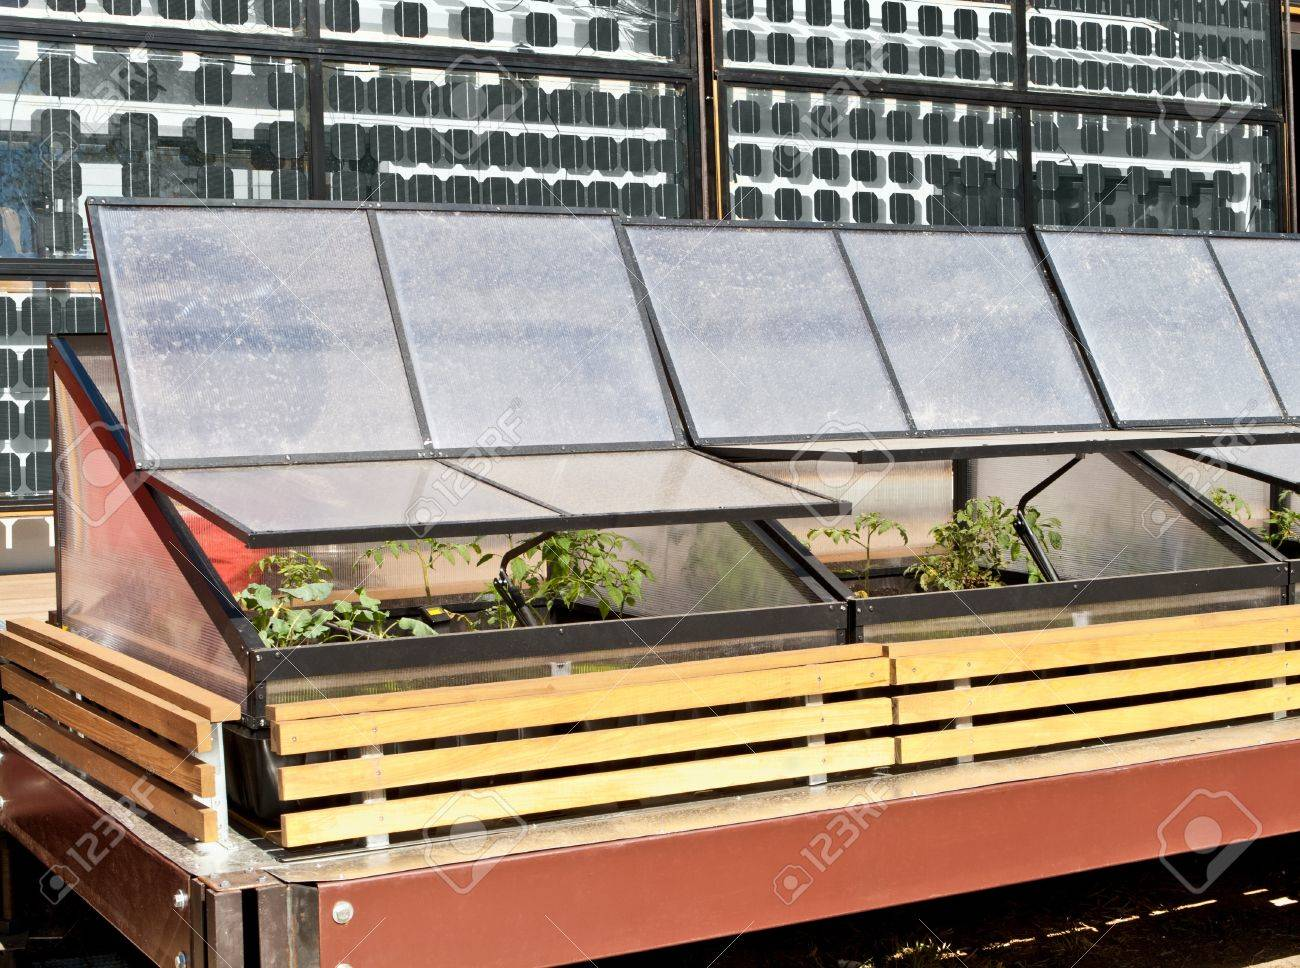 Greenhouse cold frame and solar panels